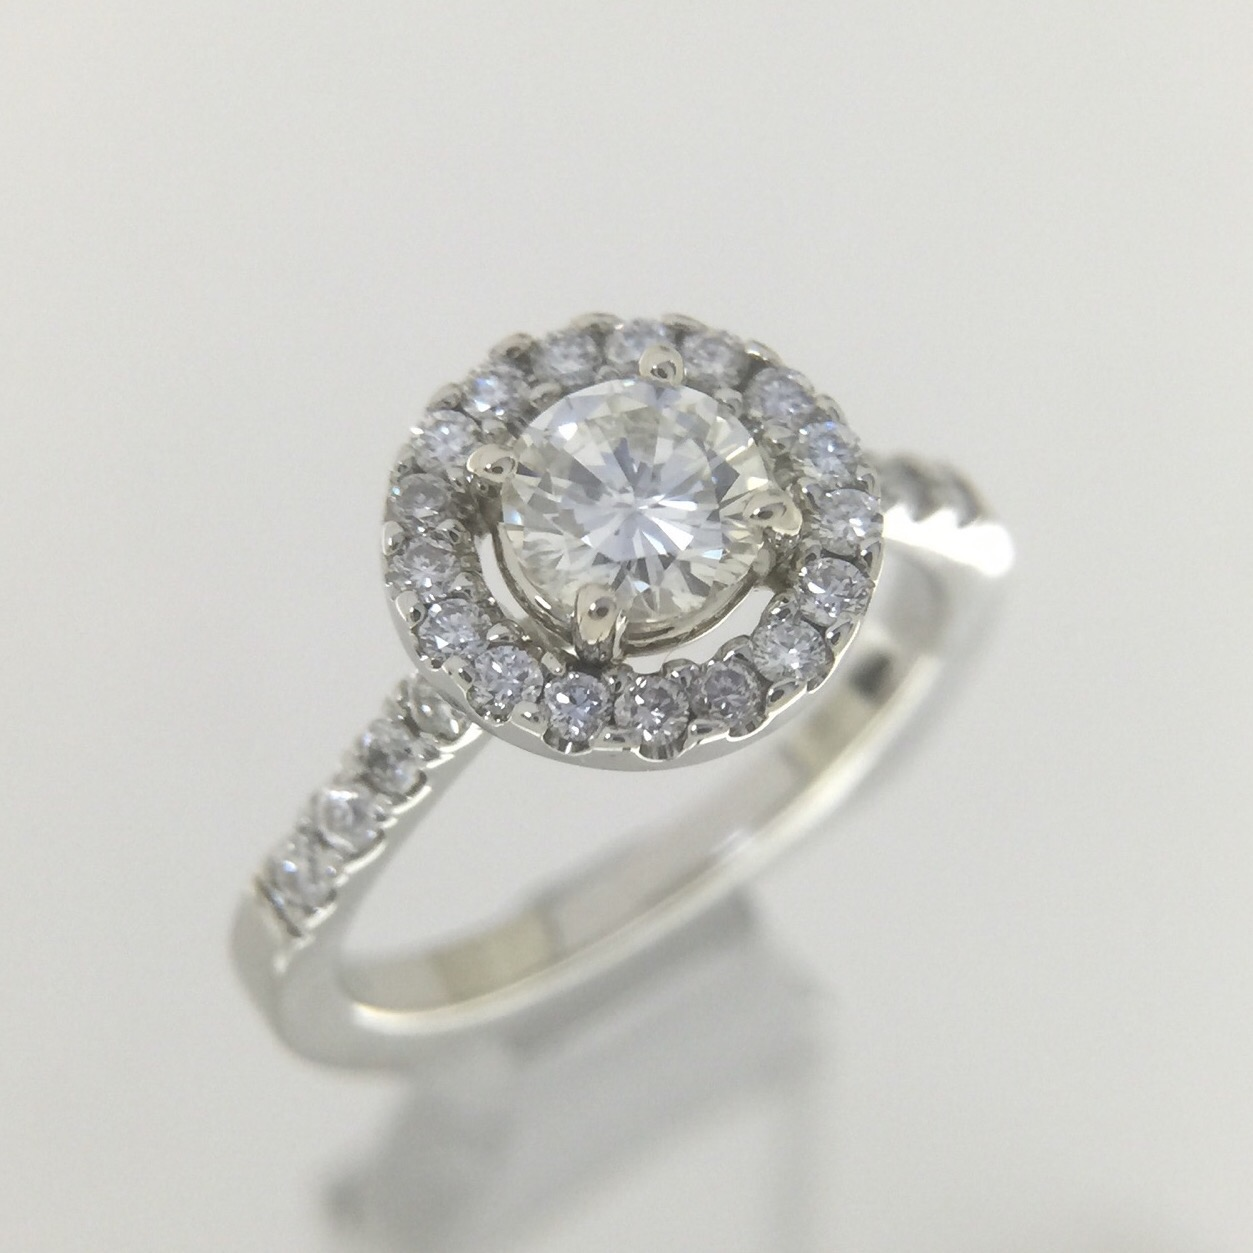 classy platinum of elegant rings prices engagement diamond with in for ring india women price